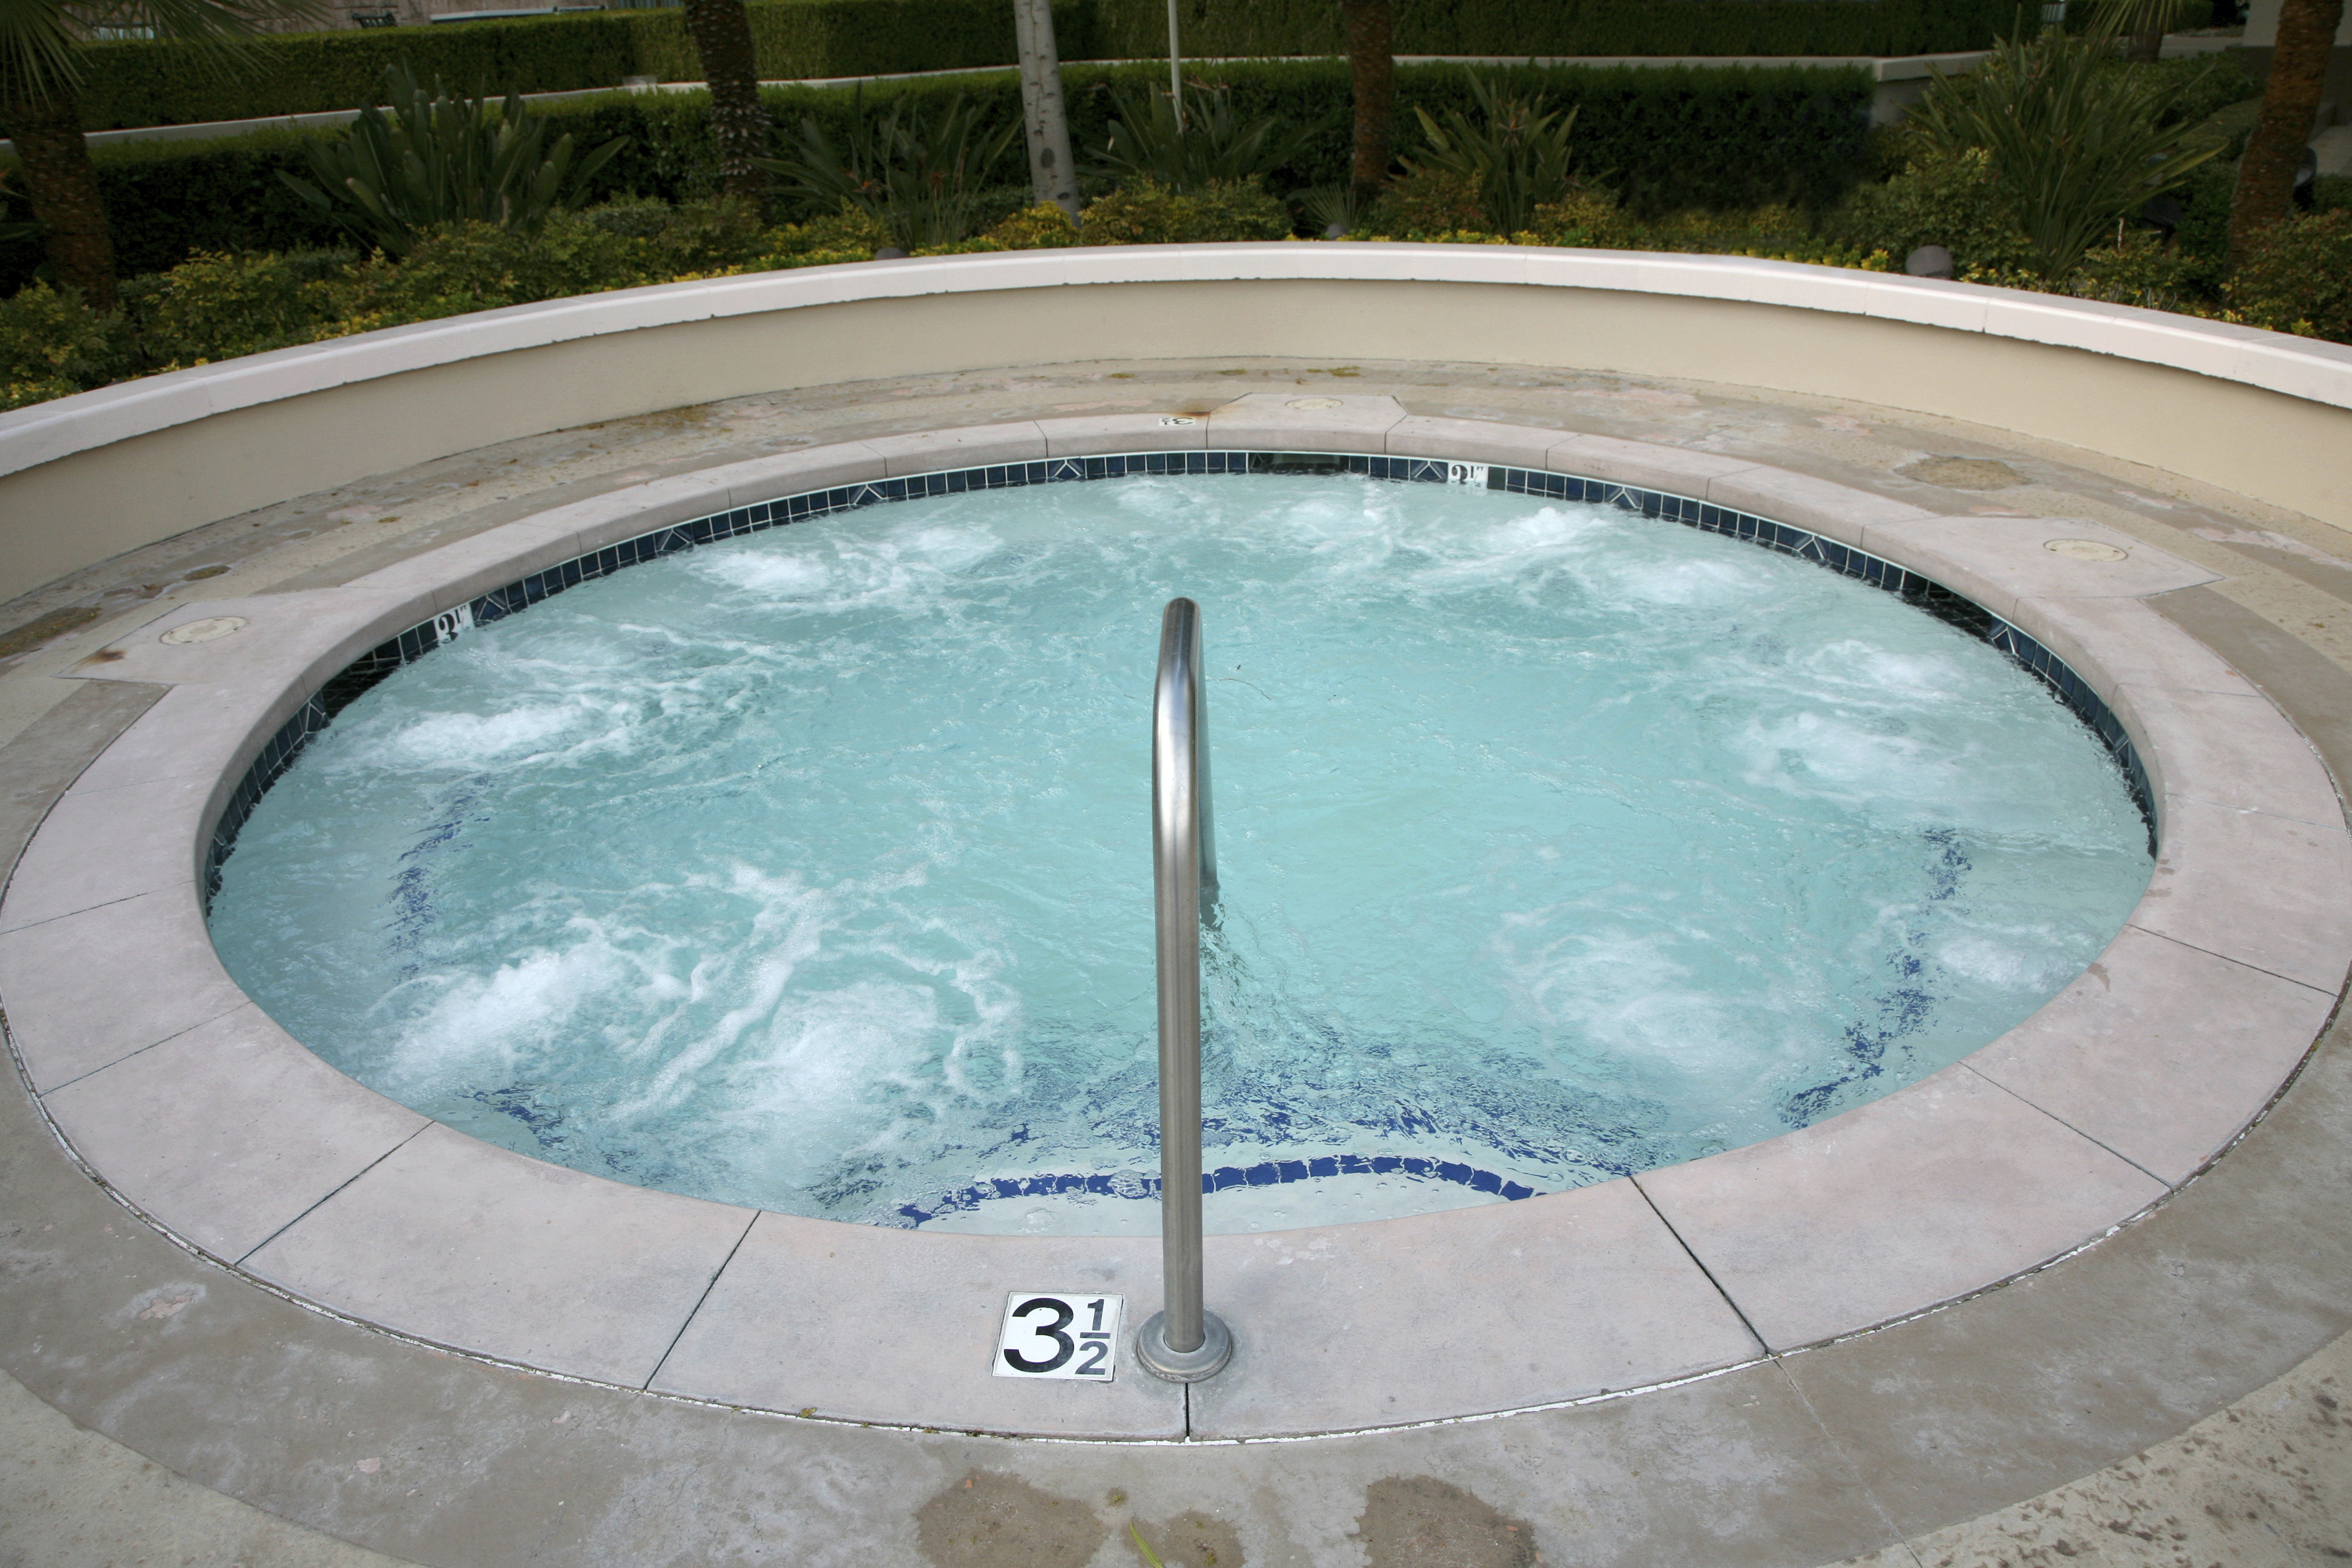 Bathroom-Terrific-Round-Hot-Jacuzzi-Pool-With-Pretty-Garden-View-Bathrooms-With-Jacuzzi-Design-Ideas